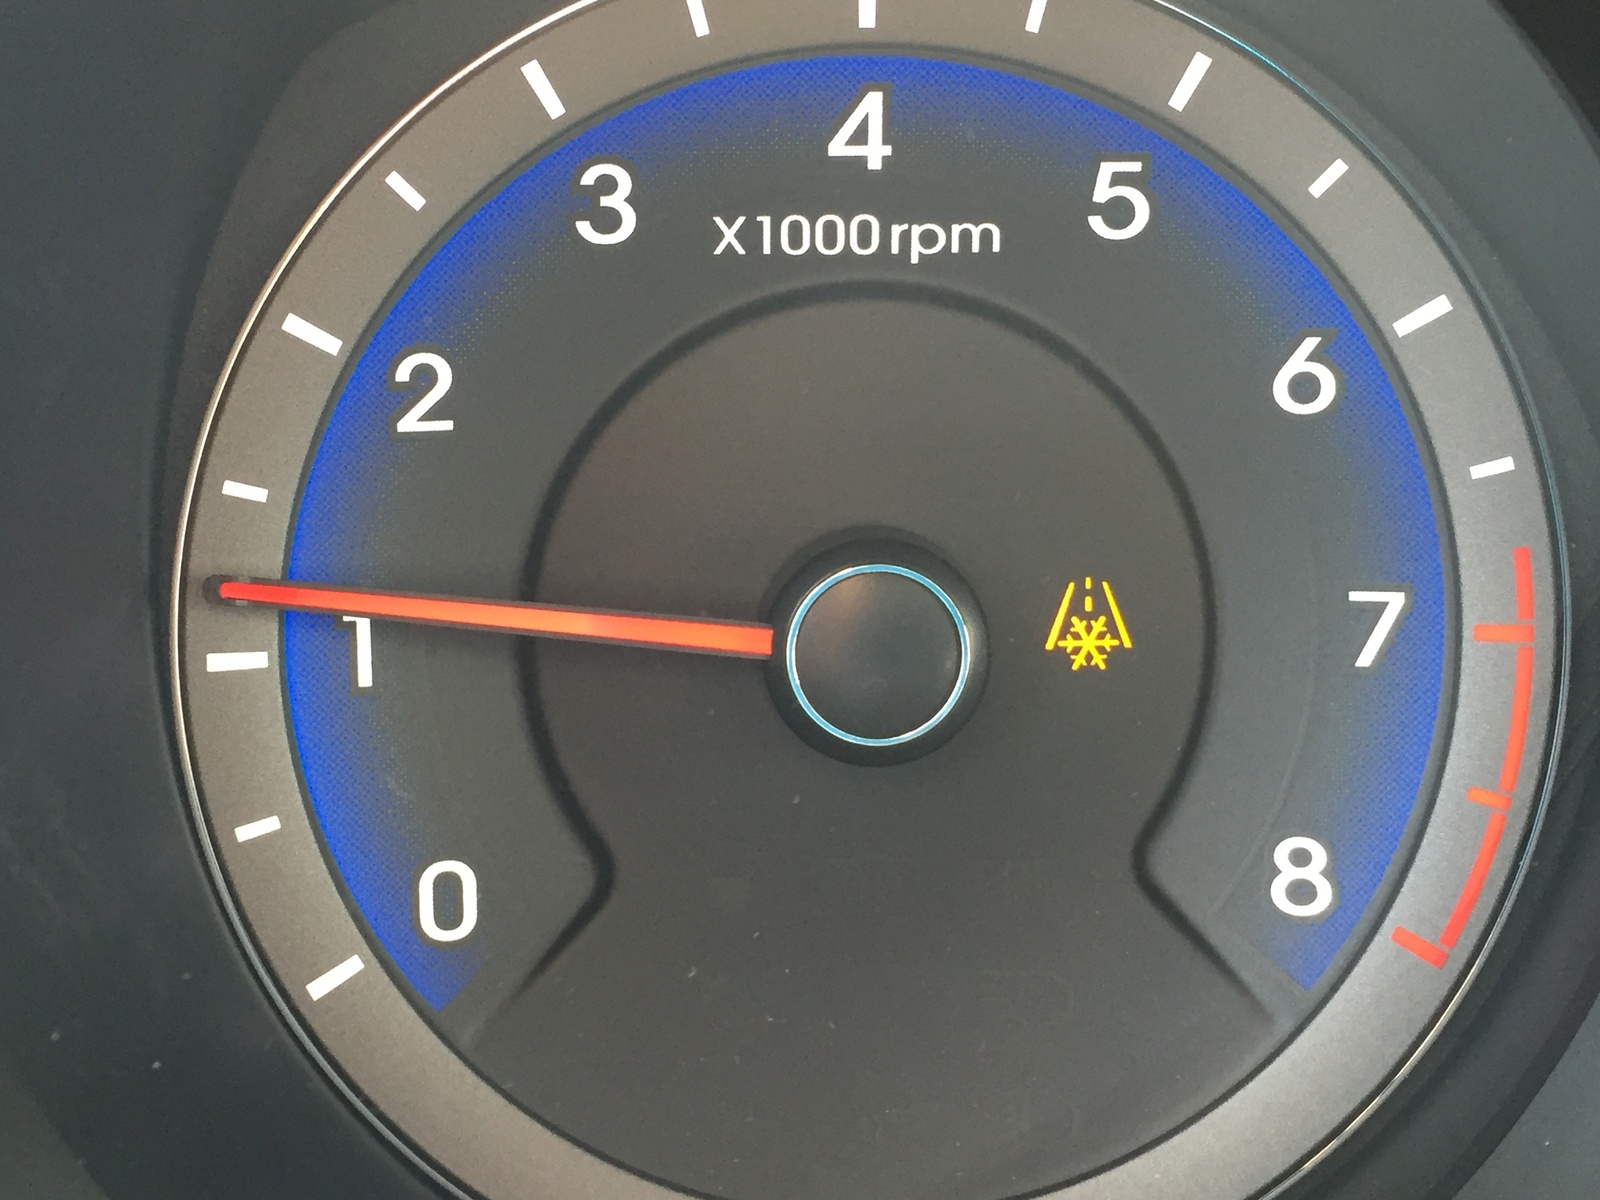 Warning Light Is On. What Is It?